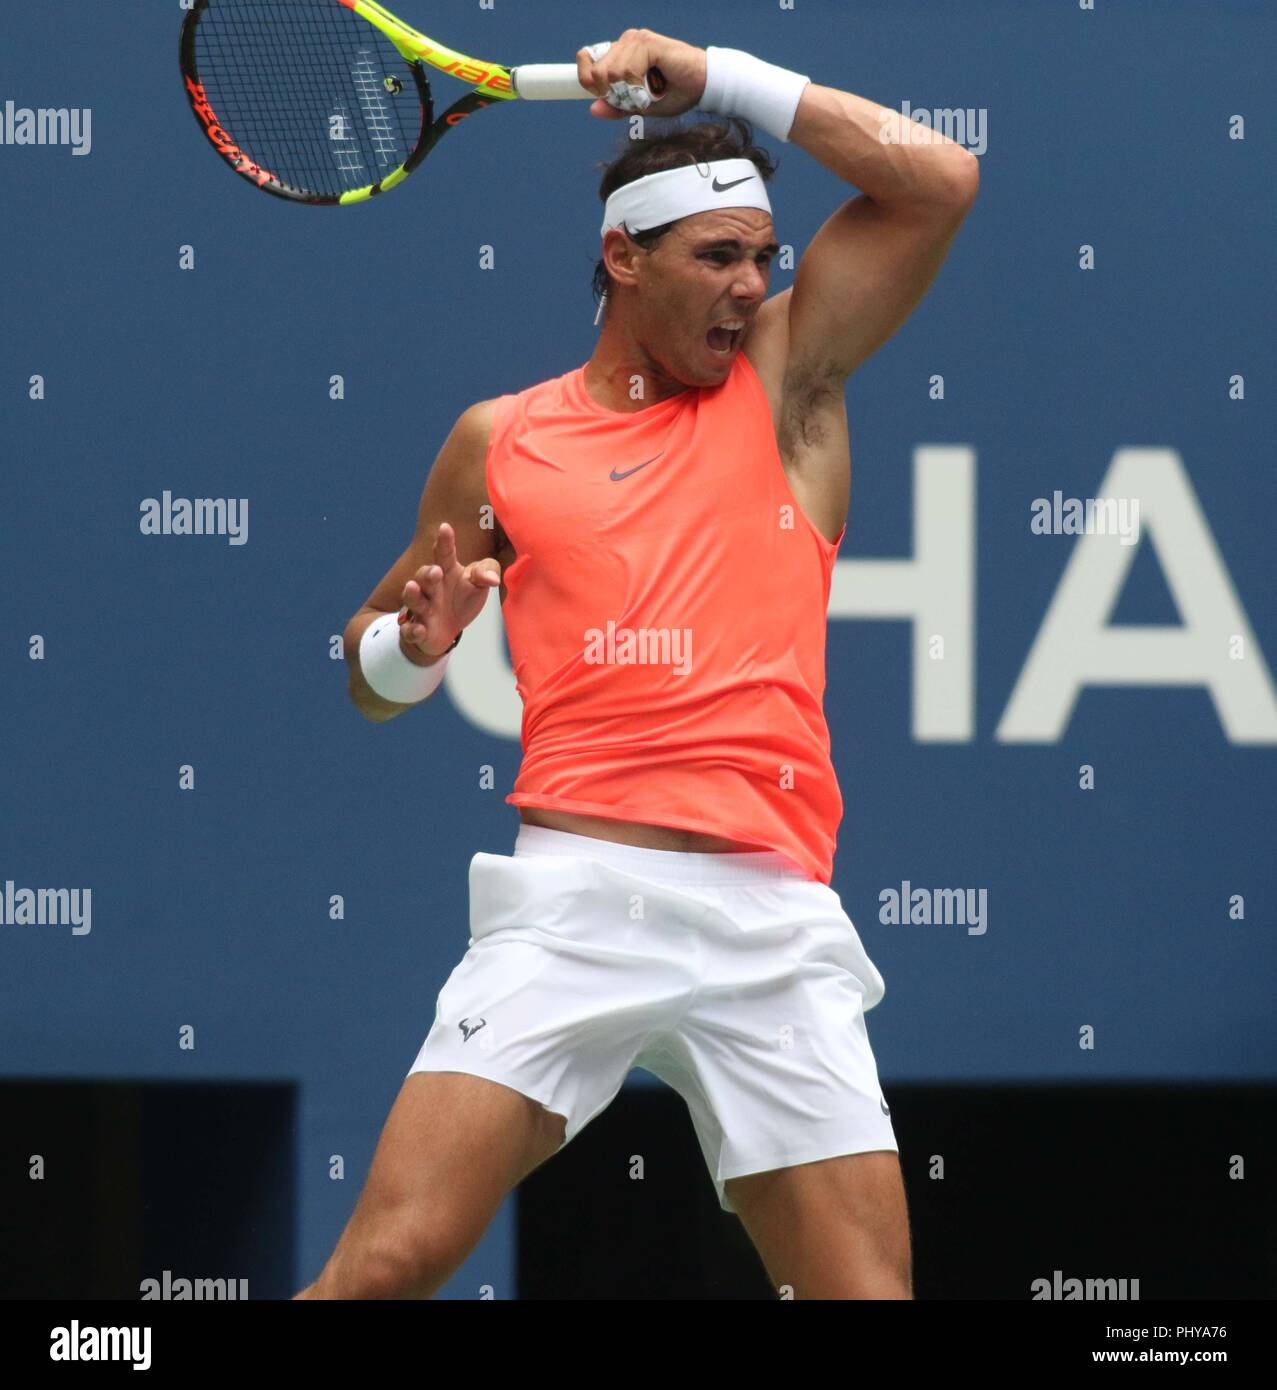 Rafael Nadal Us Open High Resolution Stock Photography And Images Alamy